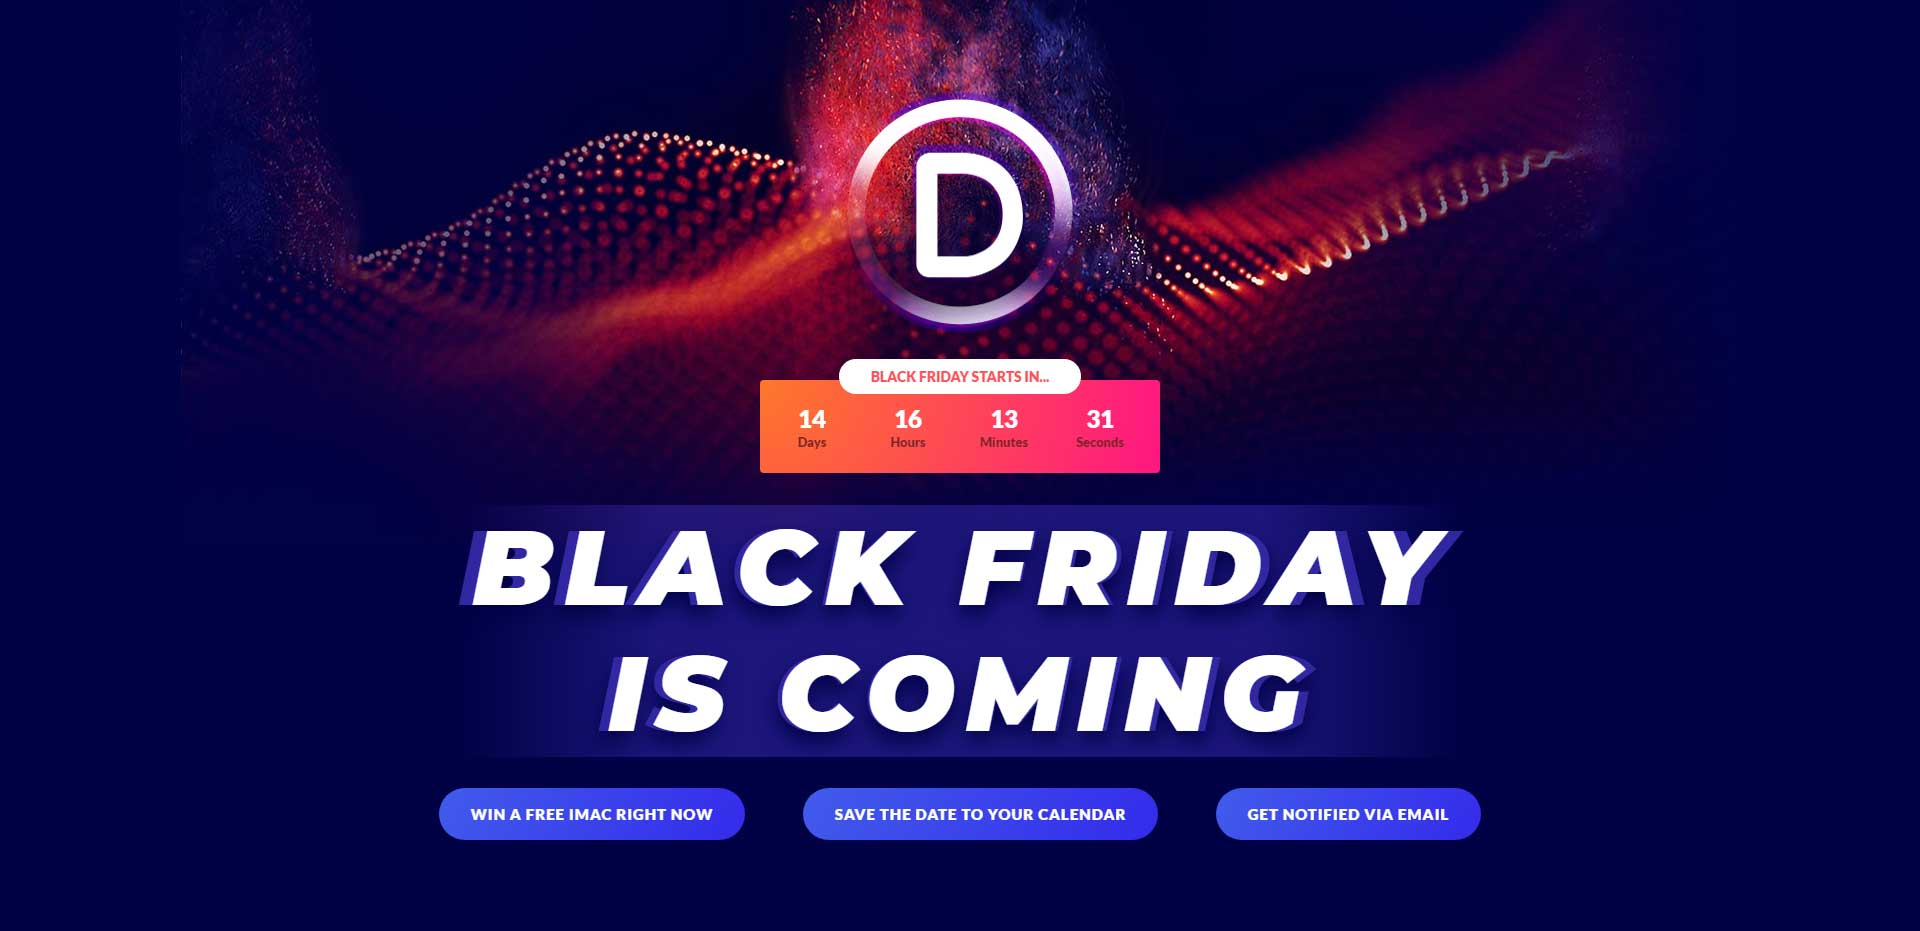 Divi Theme Black Friday Give Away